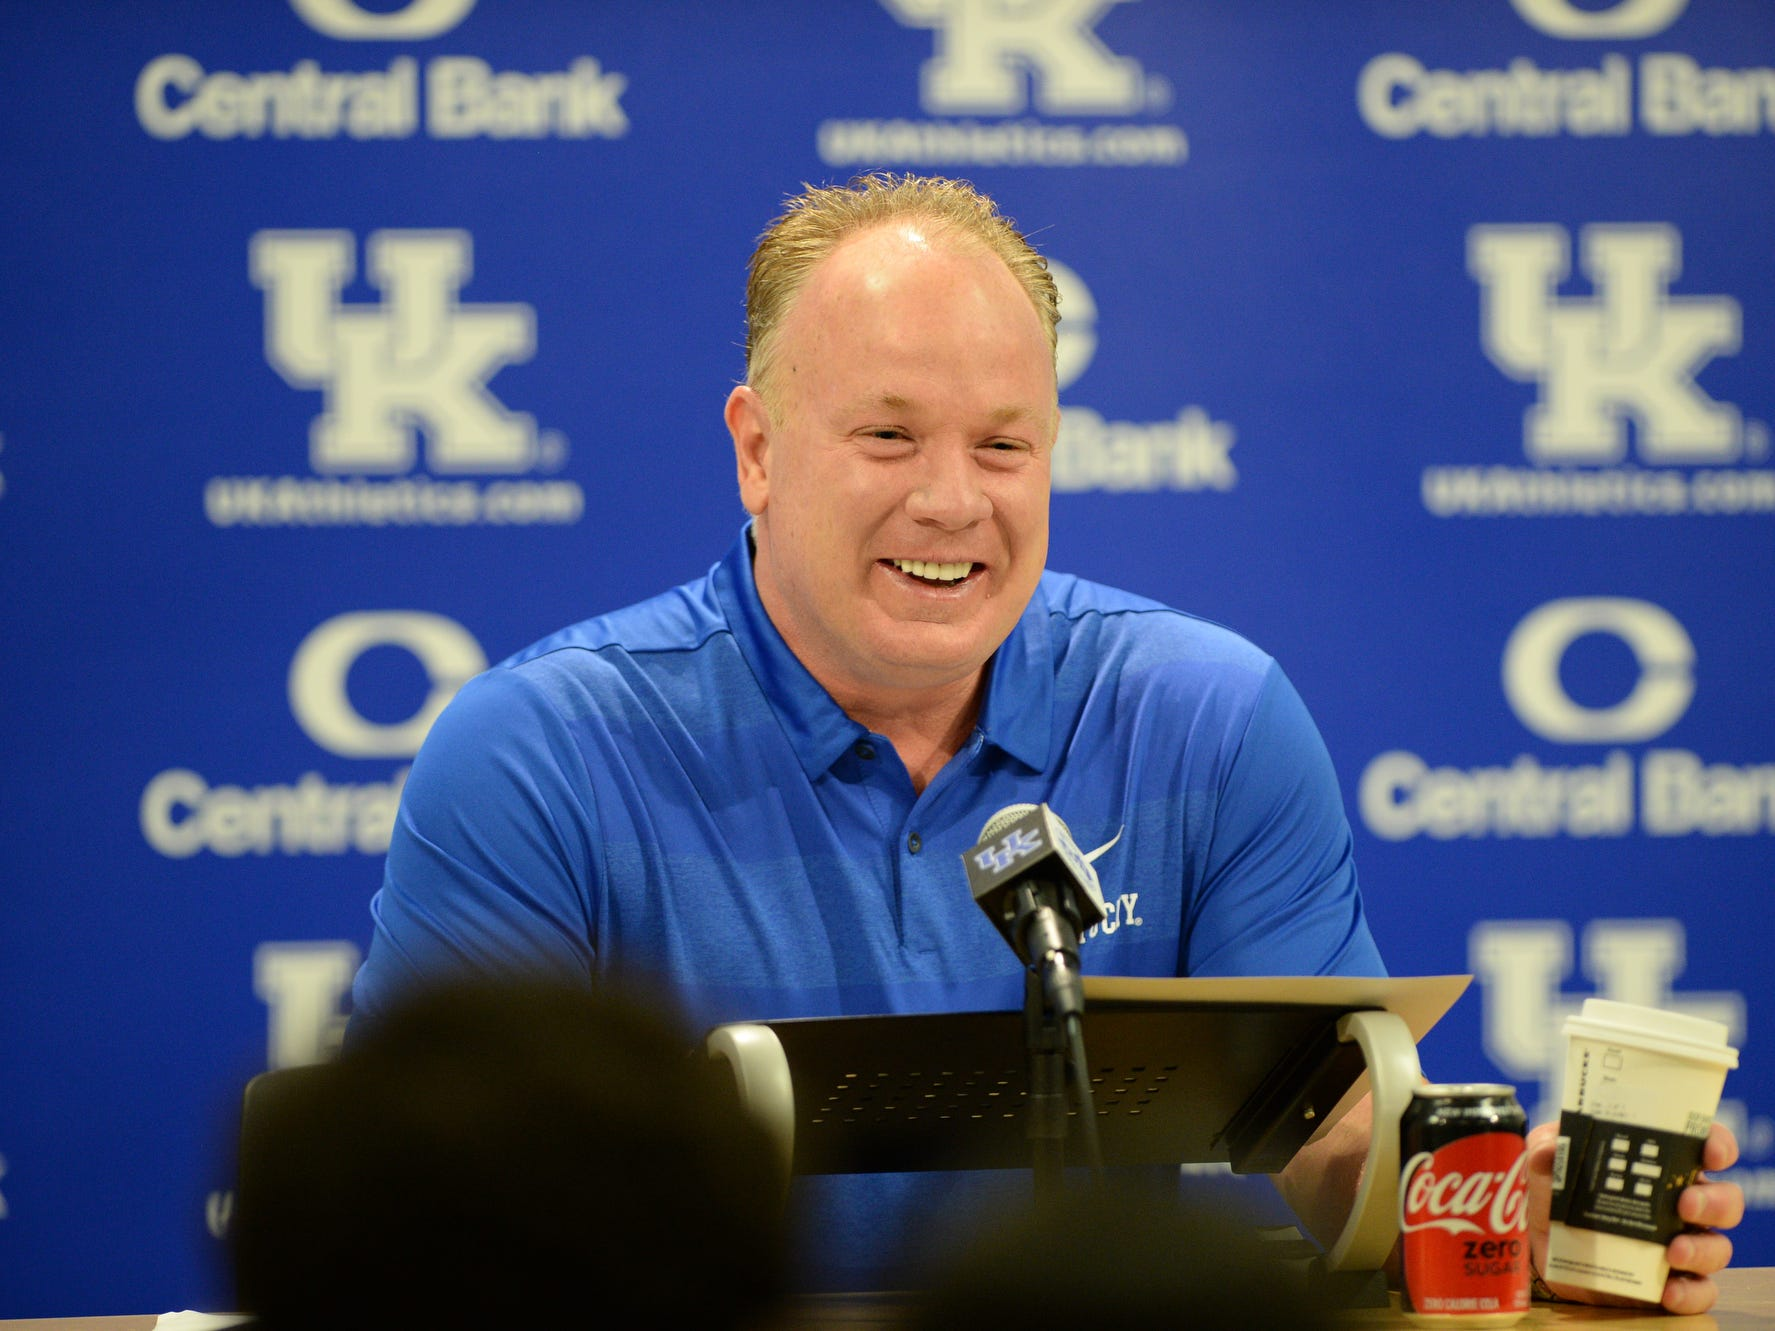 Head coach Mark Stoops during a press conference at the UK football media day at Kroger Filed in Lexington, Kentucky on Friday, August 3, 2018.